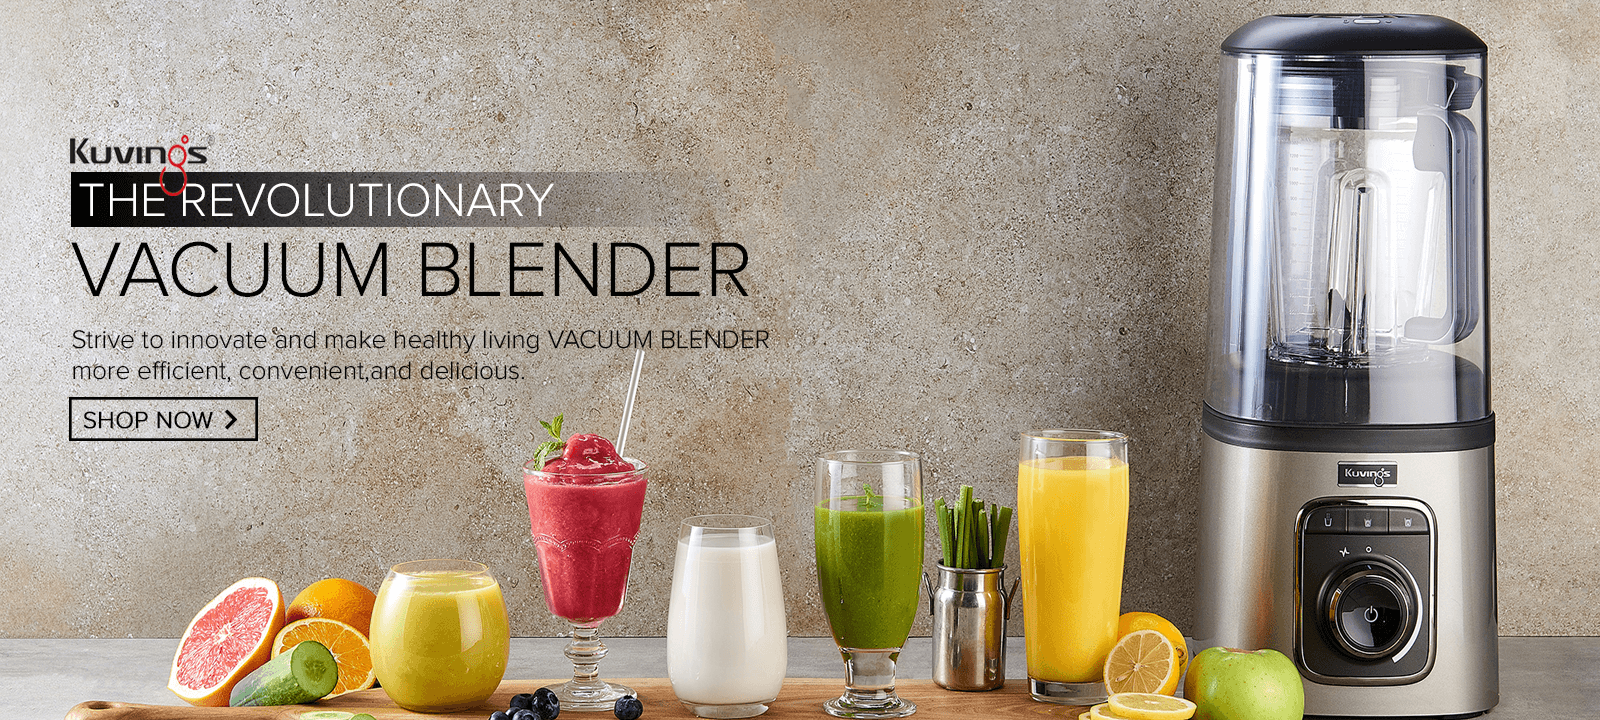 Kuving Vacuum Blender